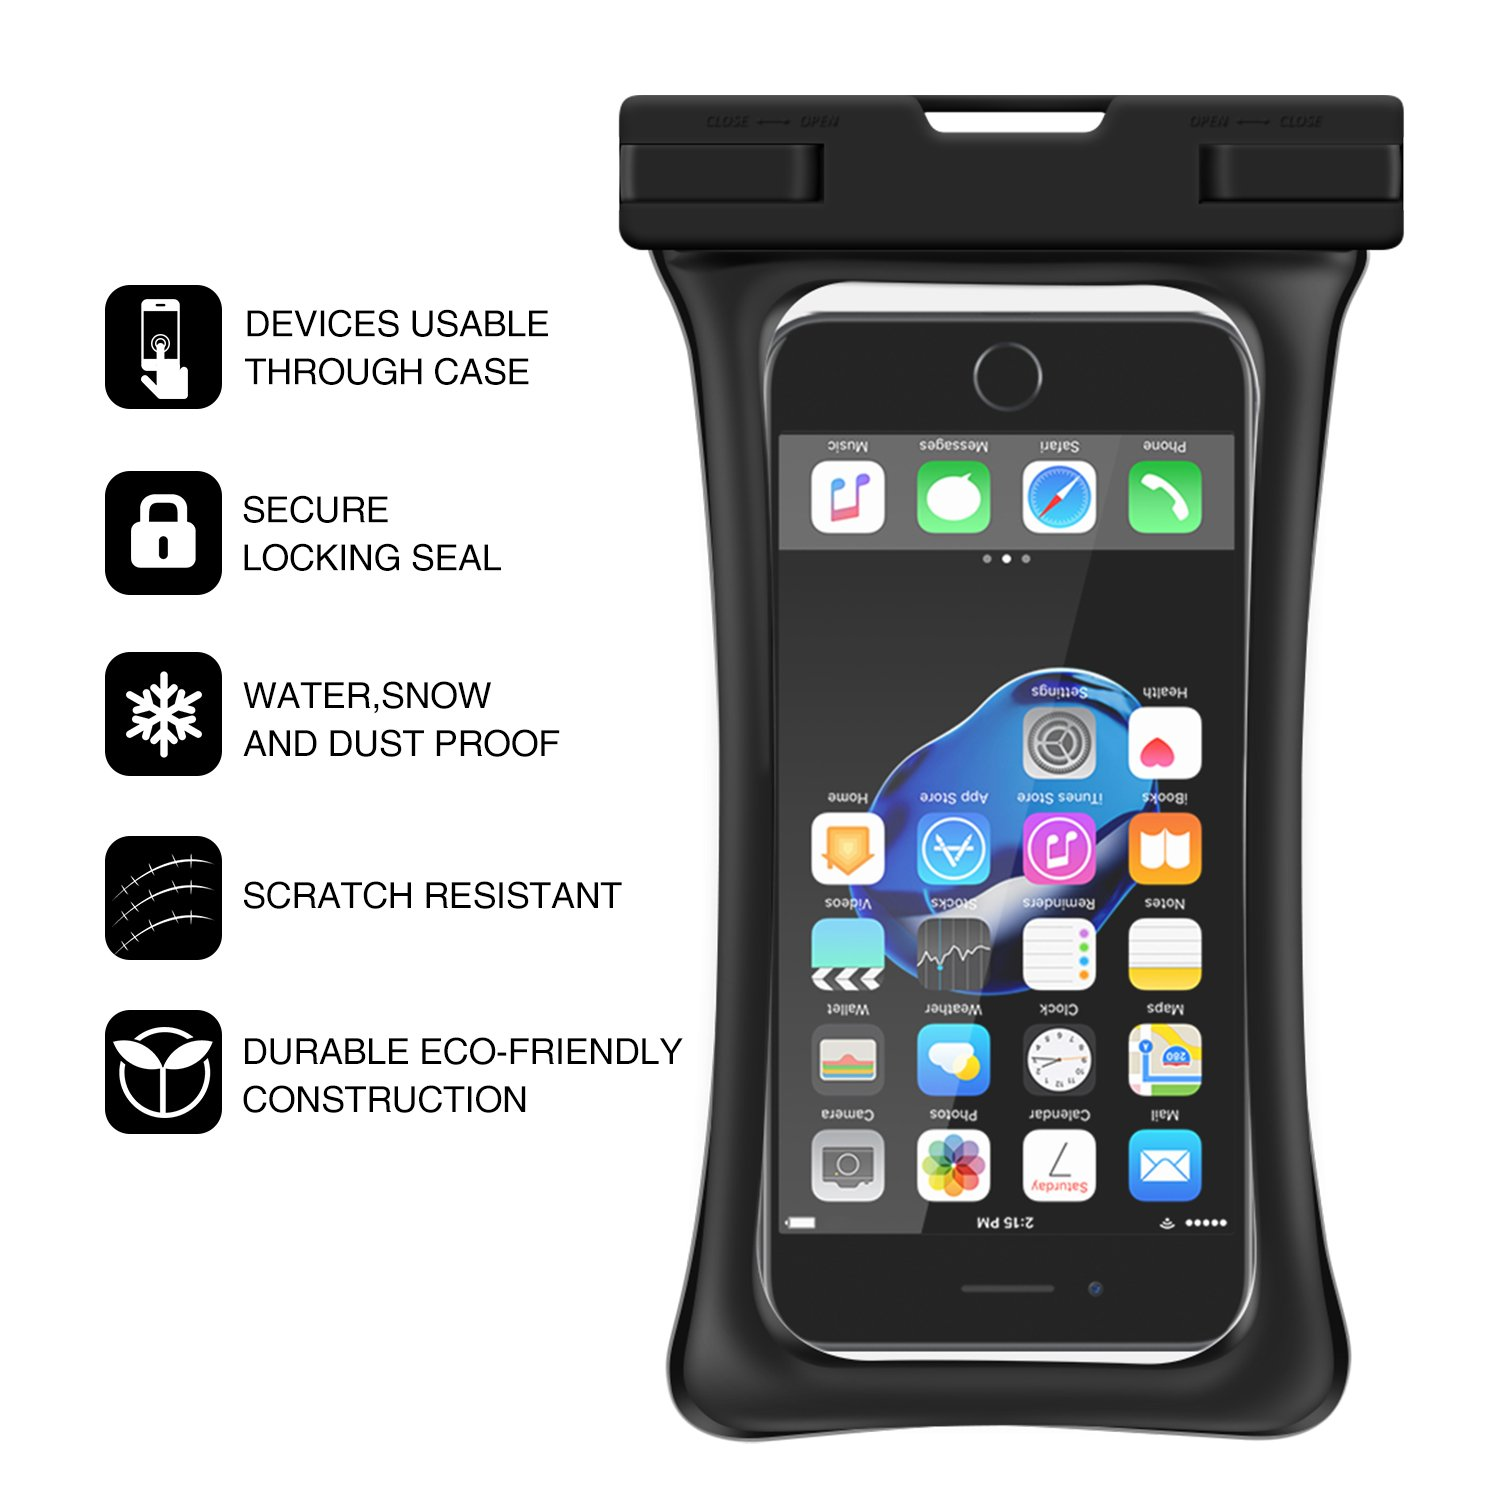 [Floating] Waterproof Phone Pouch, RANVOO Dry Bag Case for iPhone X 8 8 Plus 7 7 plus 6 6s 6 Plus, Samsung Galaxy S9 Plus S8 Edge Note 7, LG G5 G6,with Armband and Lanyard, Up to 6.2''- Black by RANVOO (Image #5)